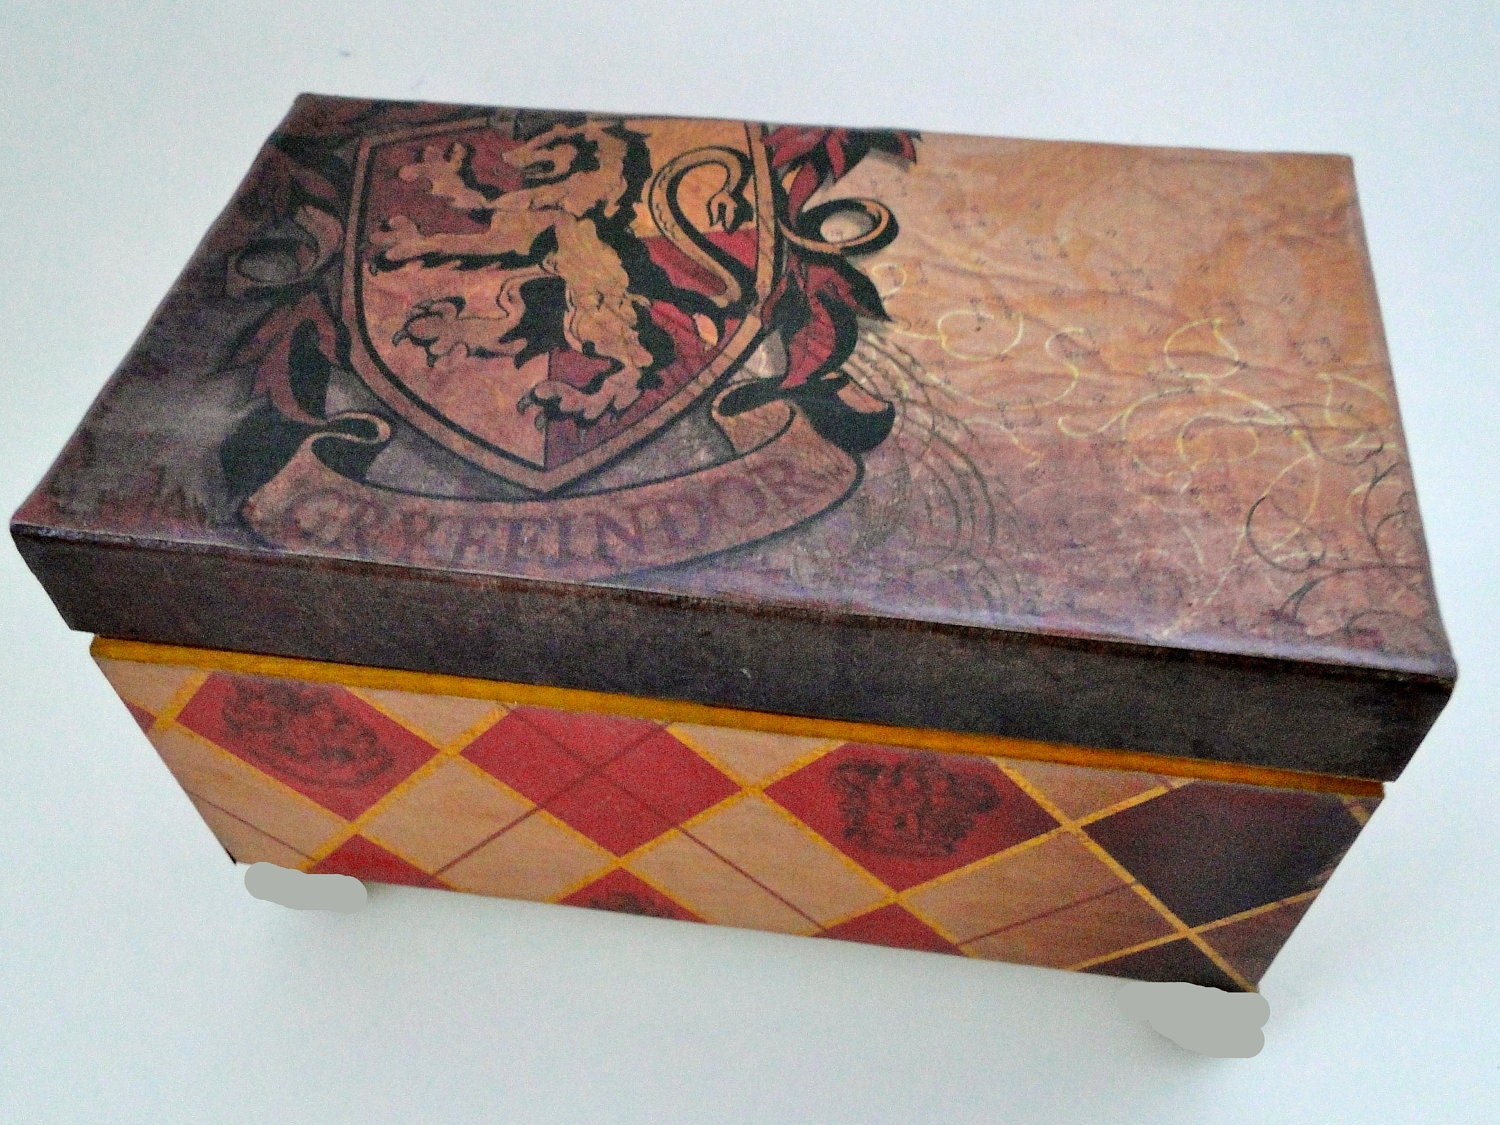 Harry Potter Golden Gryffindor Keepsake Trinket Box Vintage